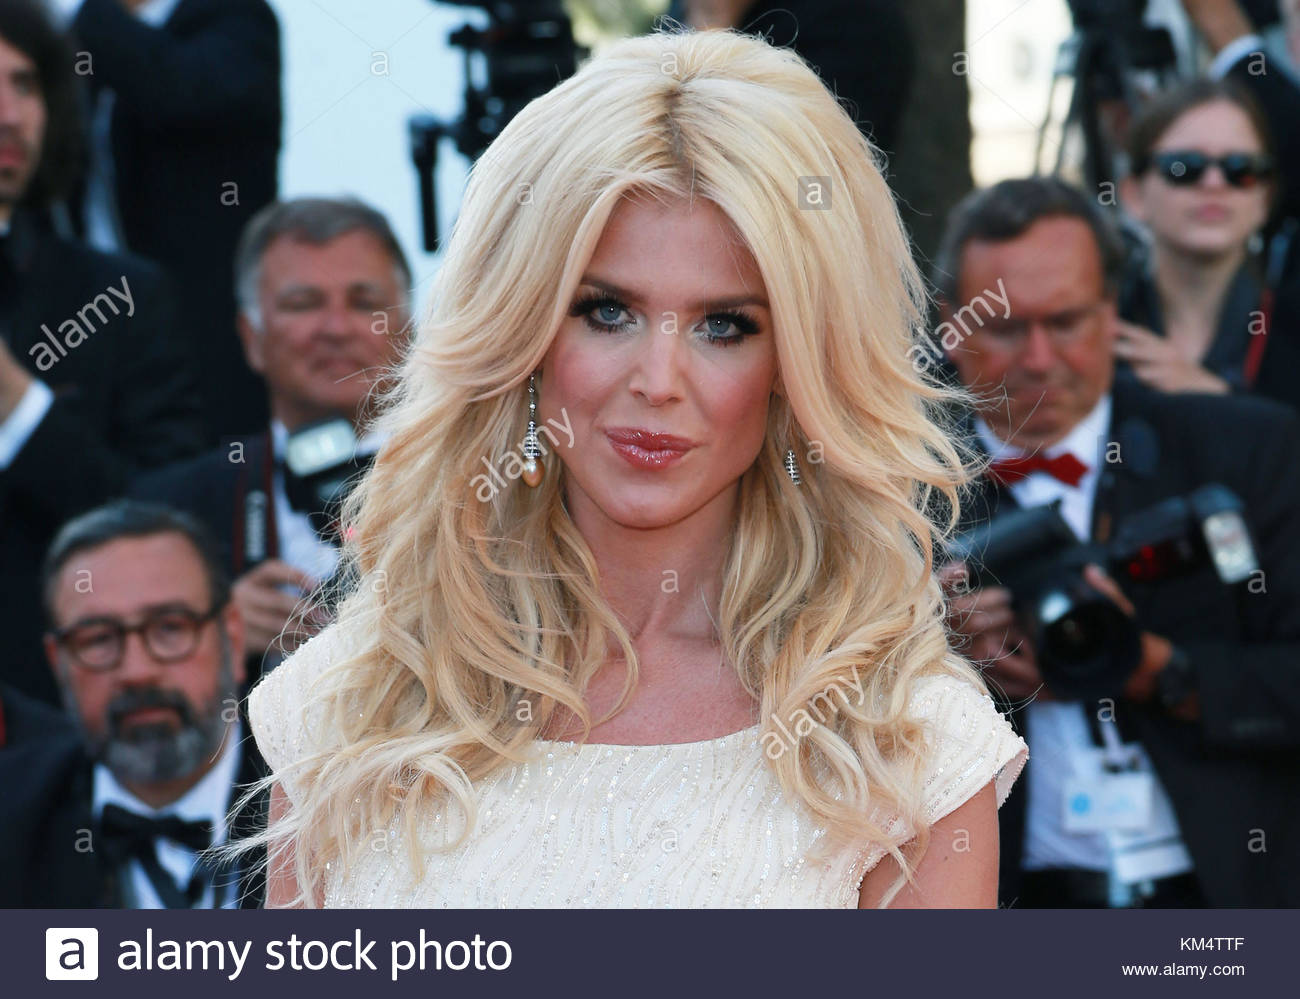 Certainly Victoria silvstedt wild on you